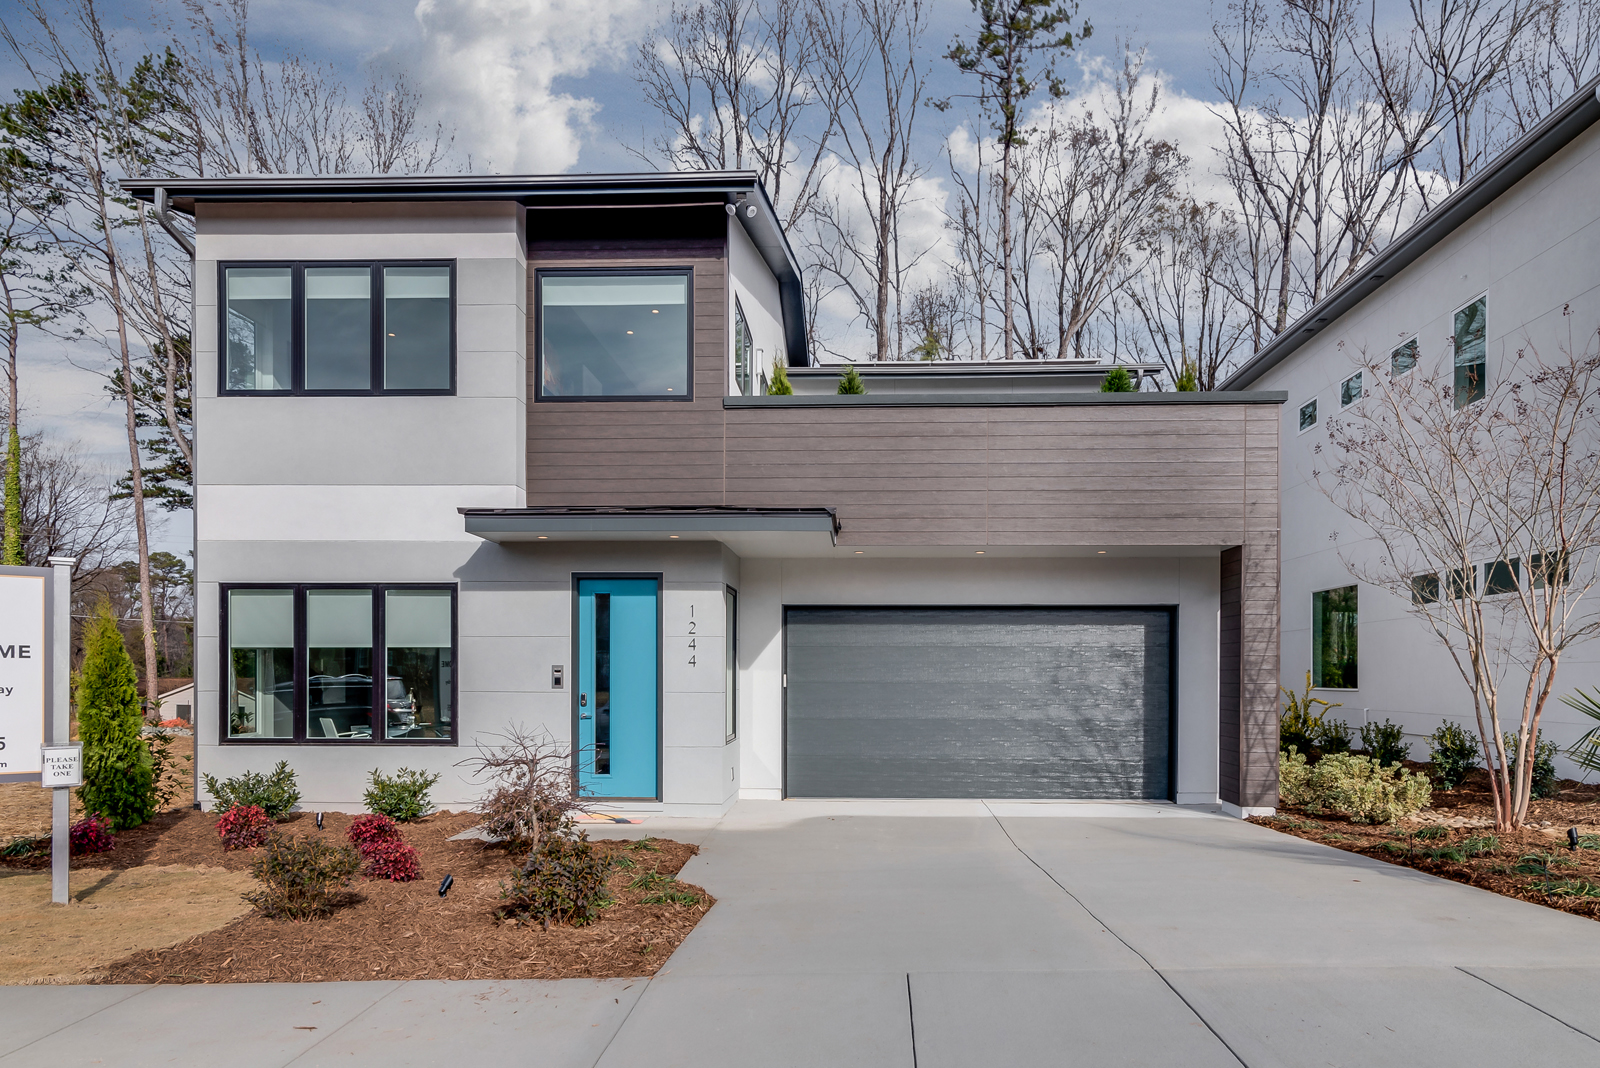 Best home builders in charlotte nc area homemade ftempo for Best home builders in south carolina